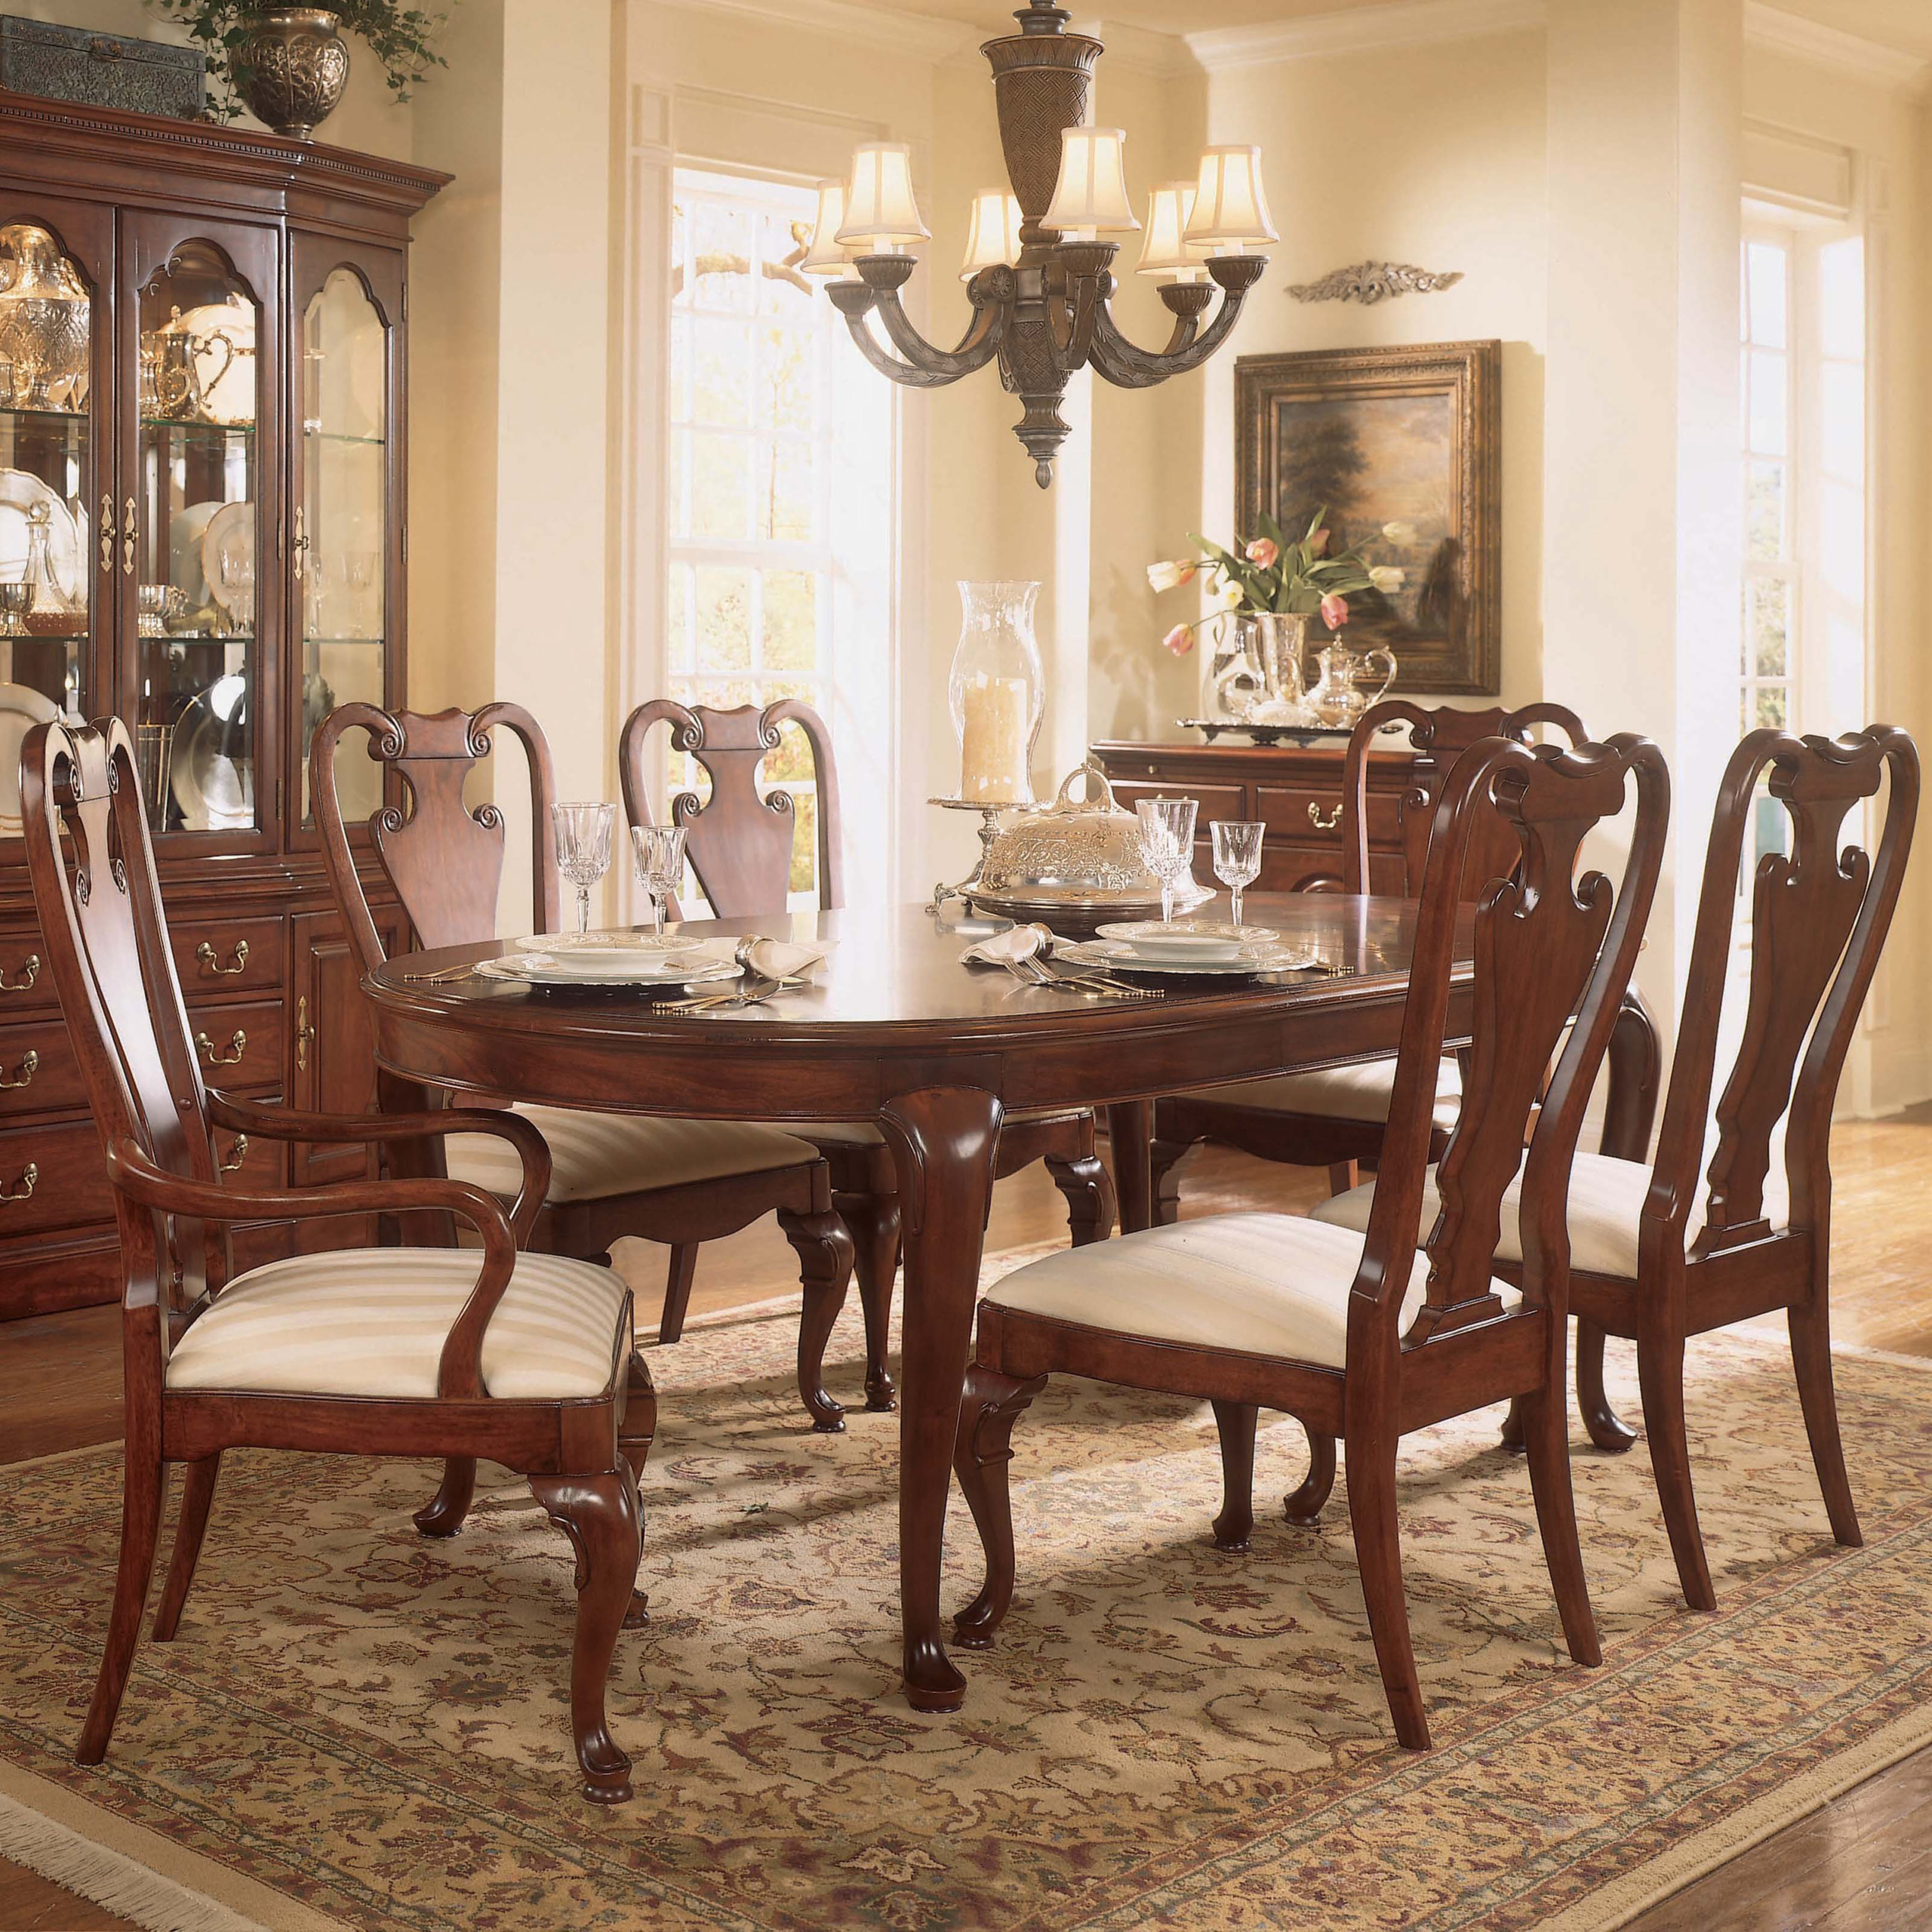 Formal cherry dining room sets 13 & Formal Cherry Dining Room Sets - Foter